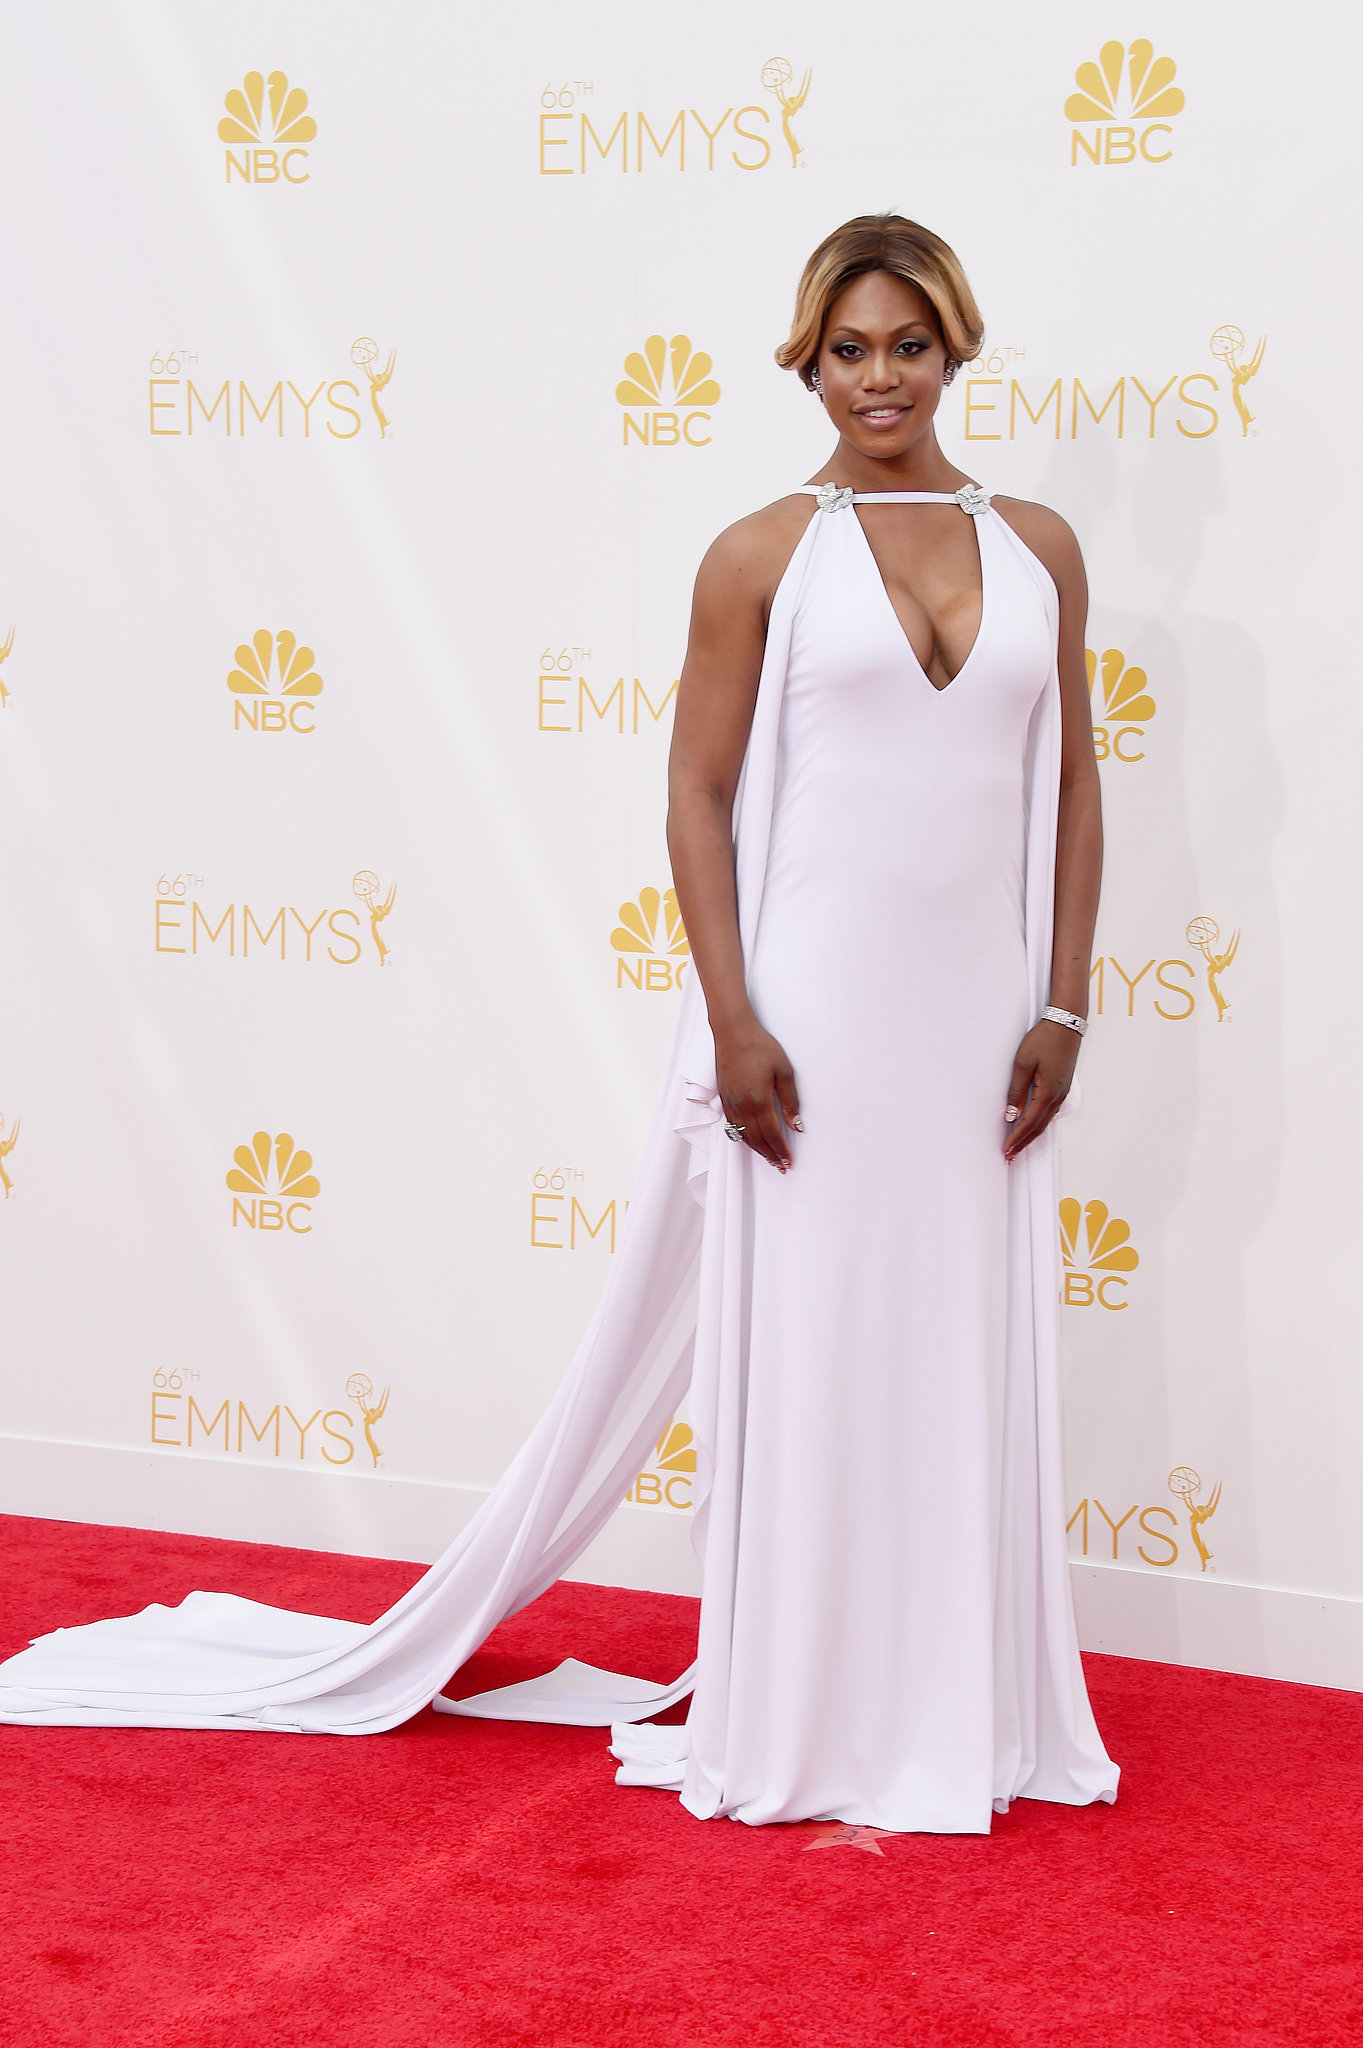 Laverne Cox in Mark Bauer at the 2014 Emmy Awards